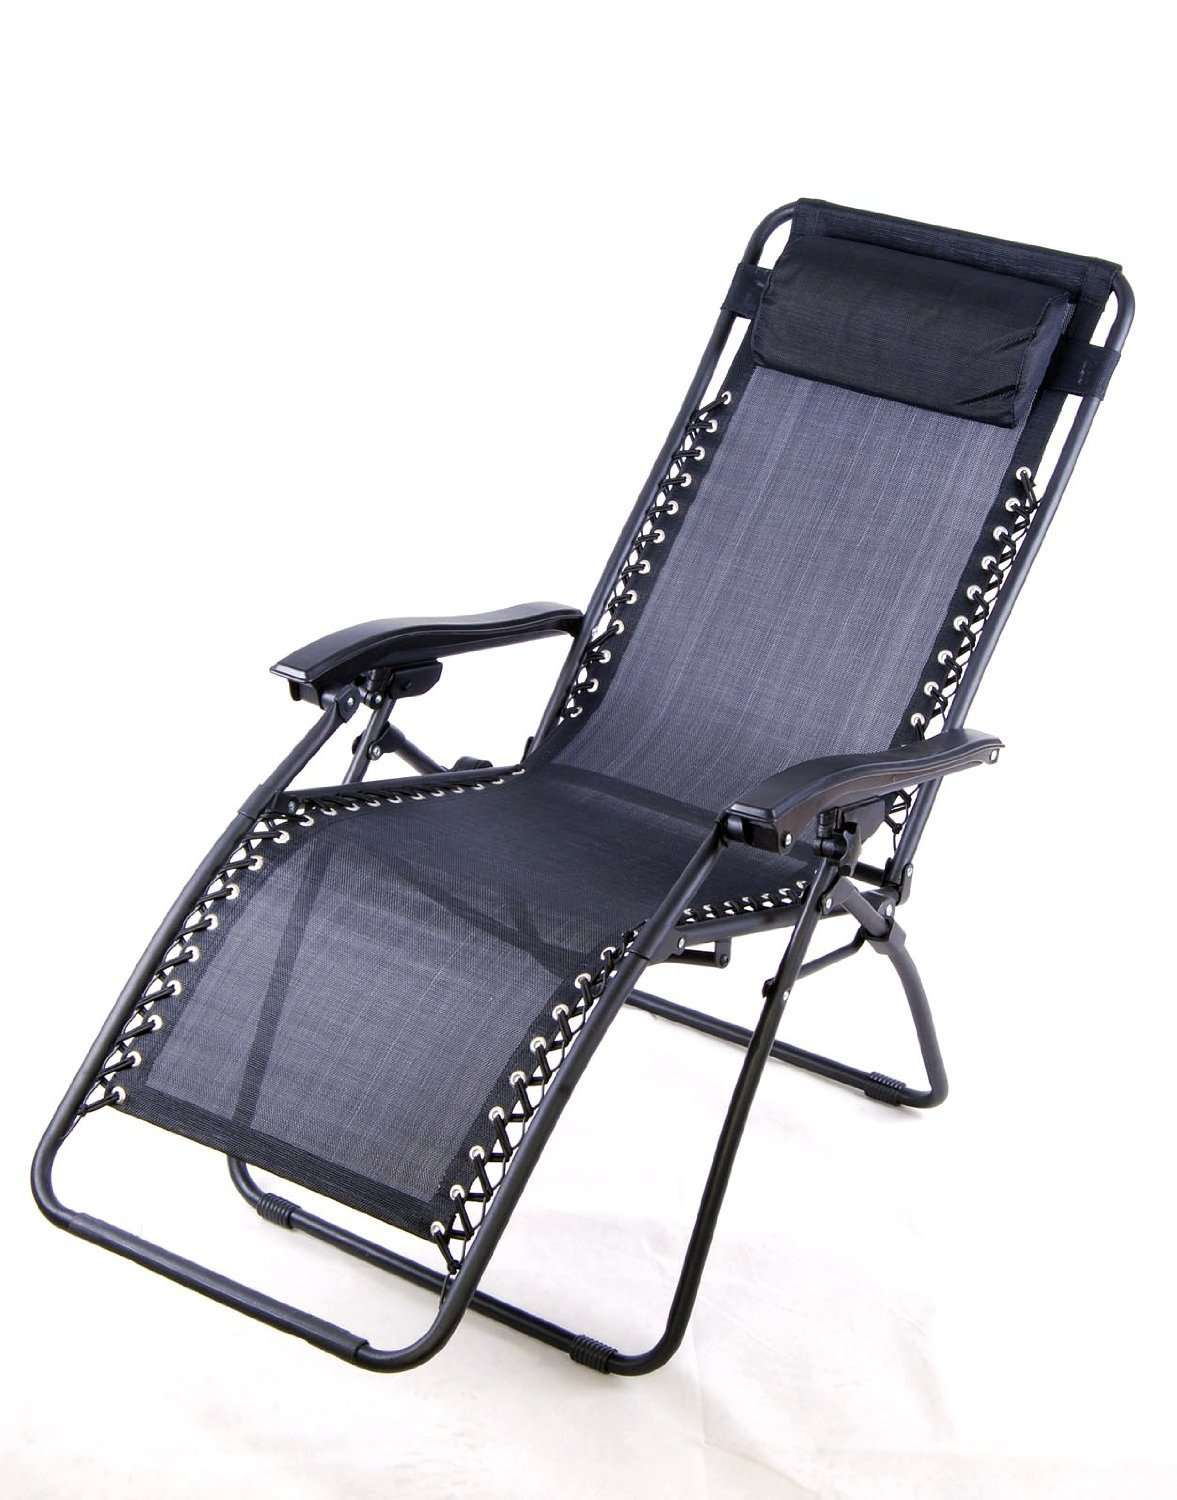 Outsunny Zero Gravity Recliner Lounge Patio Pool Chair  sc 1 st  Backyard Design And Party Planning & Our Review of the 10 Best Outdoor Recliners islam-shia.org